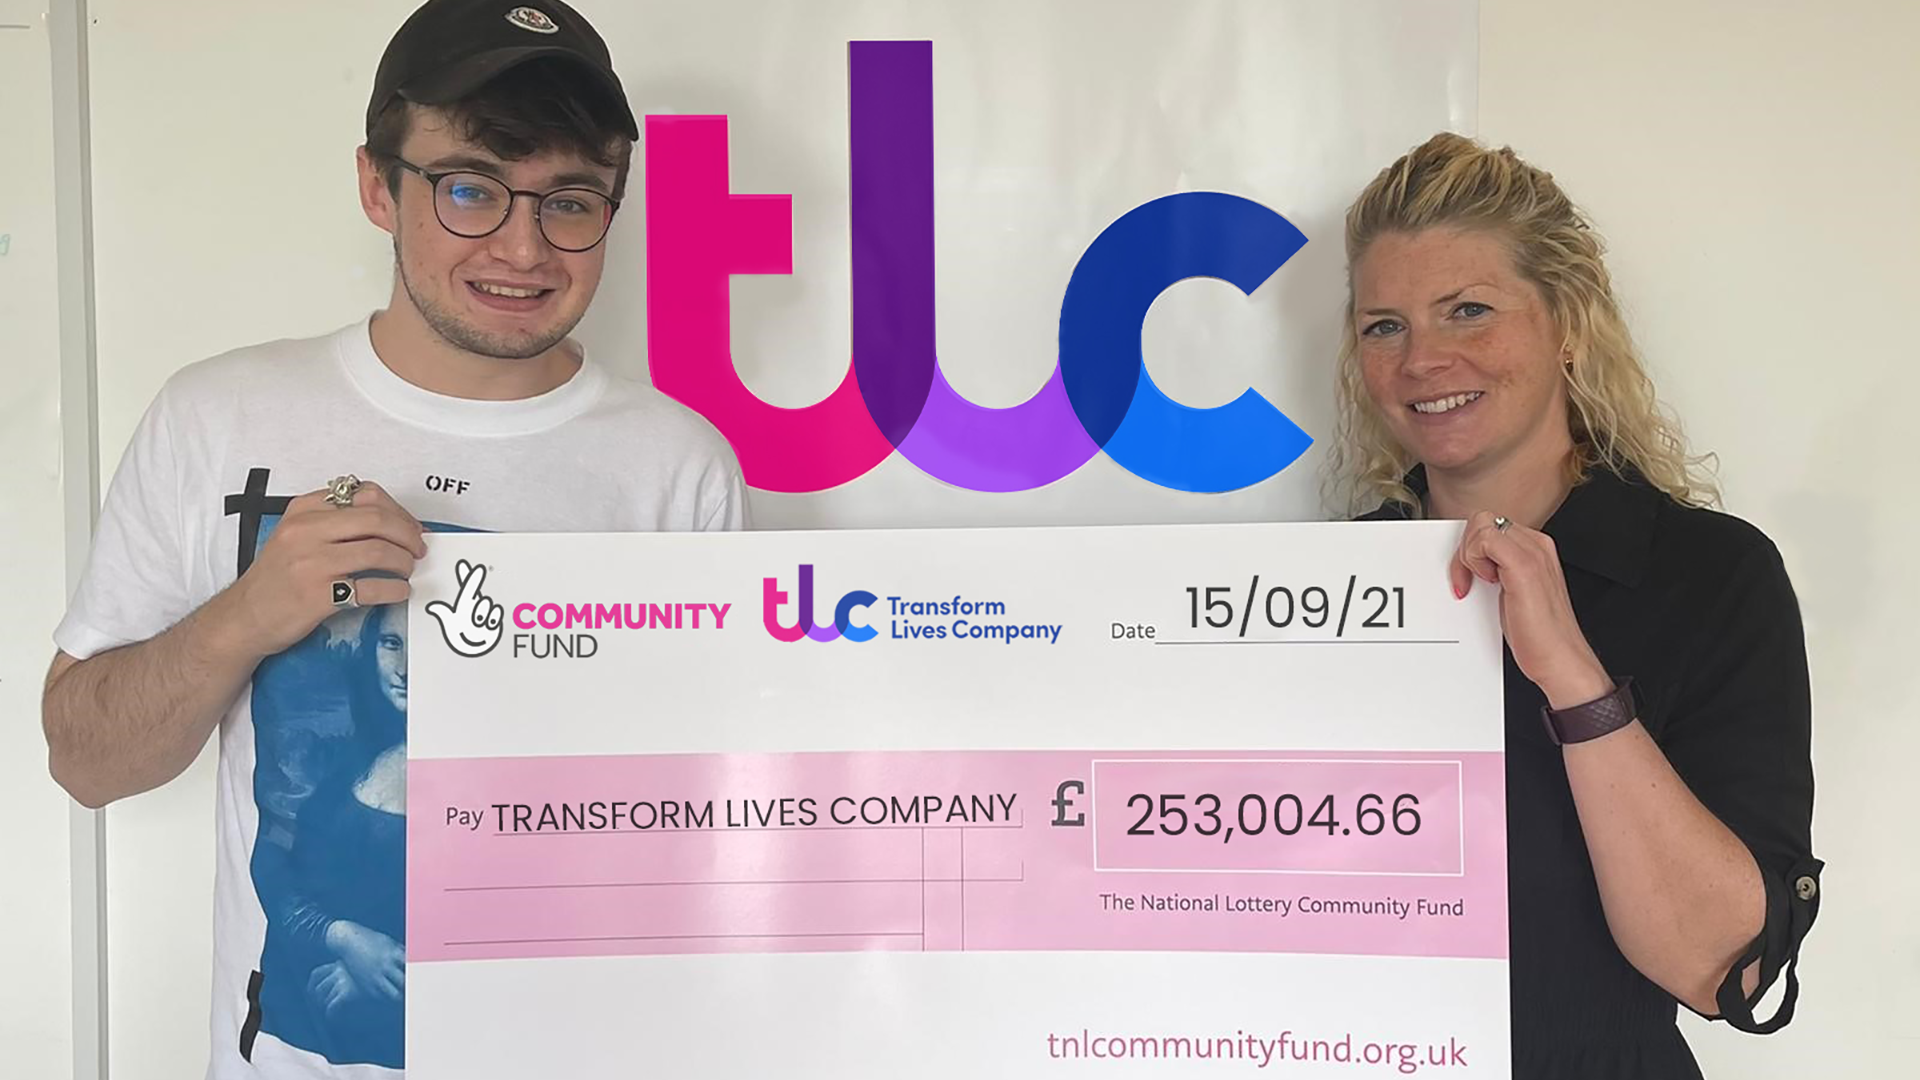 TRANSFORM LIVES COMPANY INVITES BUSINESSES TO ACT ON SOCIAL VALUE AMBITIONS FOLLOWING LOTTERY WIN